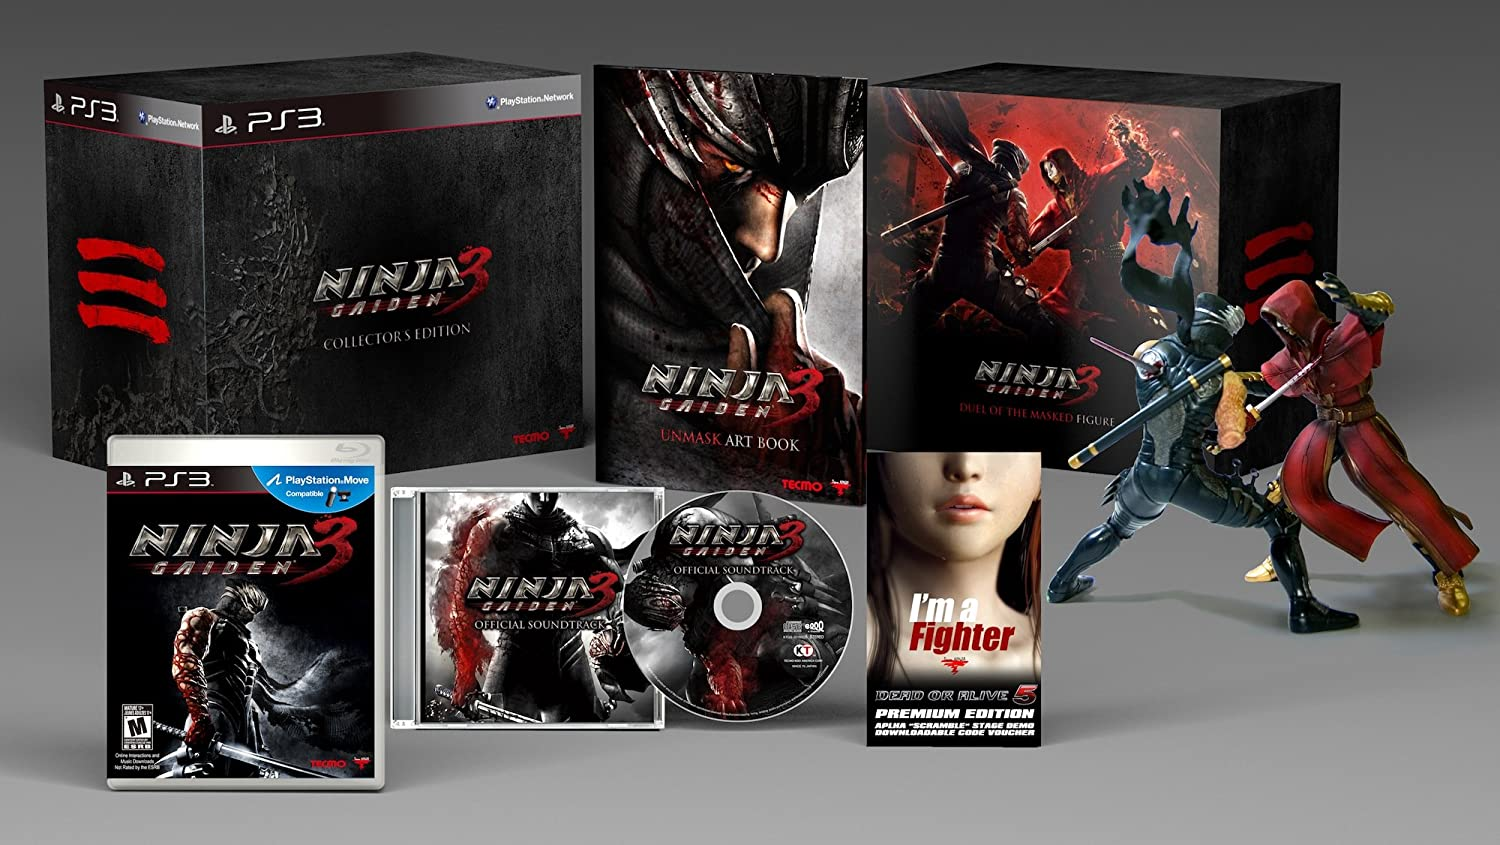 Amazon.com: Ninja Gaiden 3 Collectors Edition: Video Games